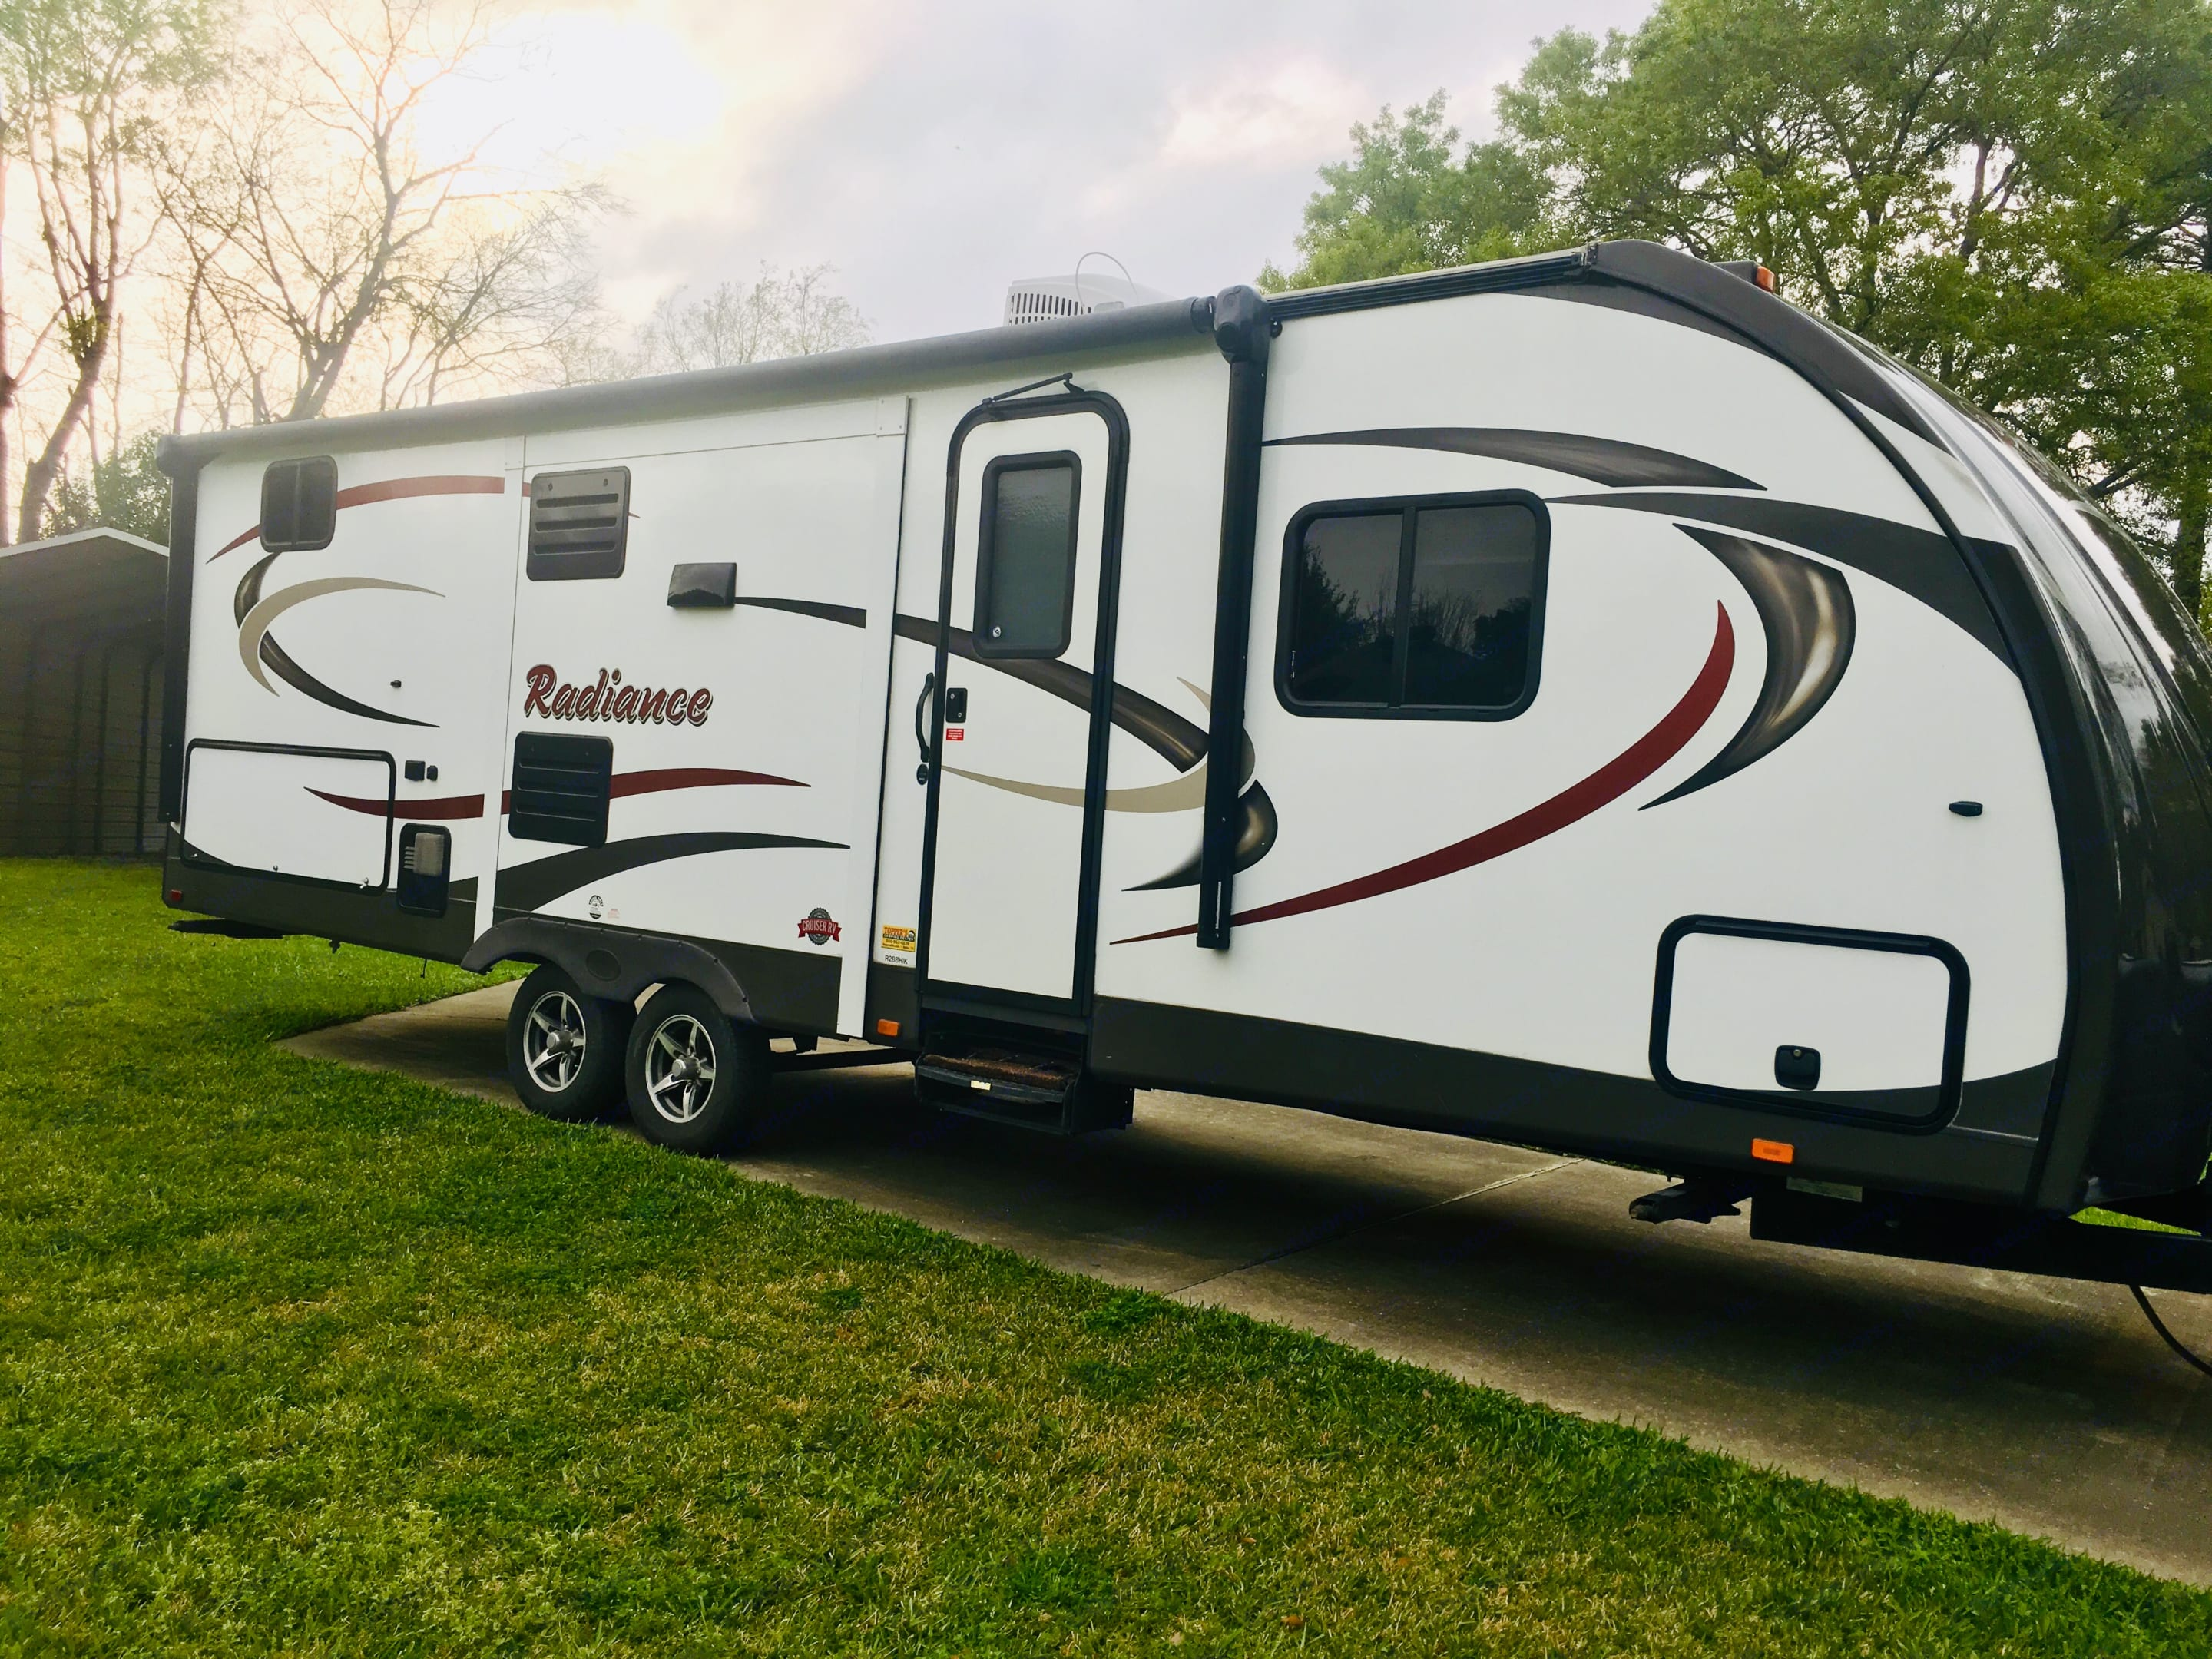 Front entry view of trailer showing kitchen slideout. Cruiser Rv Corp Radiance 2016